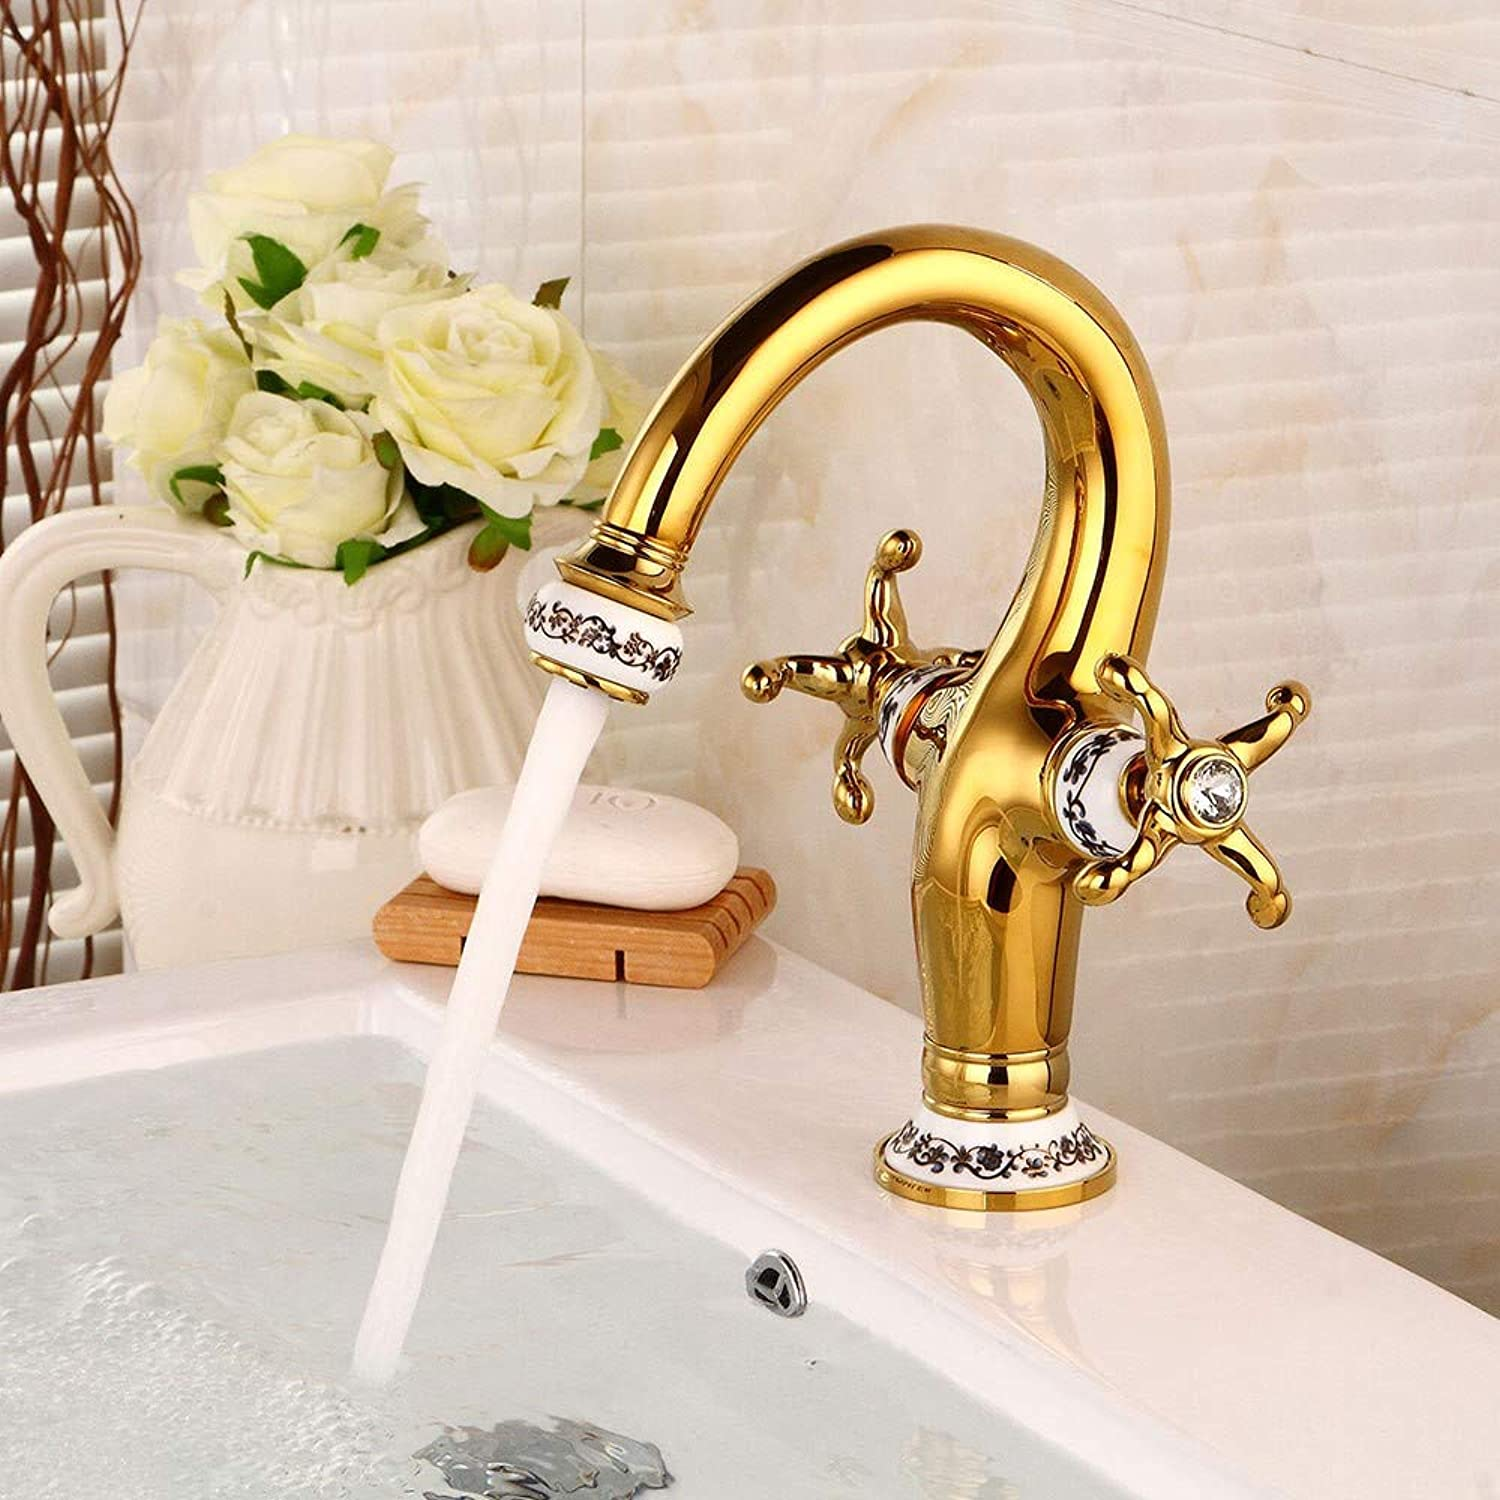 Bionmceu Bathroom Sink Taps Creative gold Mirror Effect Modern Ceramic Brass Mixer Double Handle Faucet Curved Mouth Hot And Cold Water Mixing Faucet